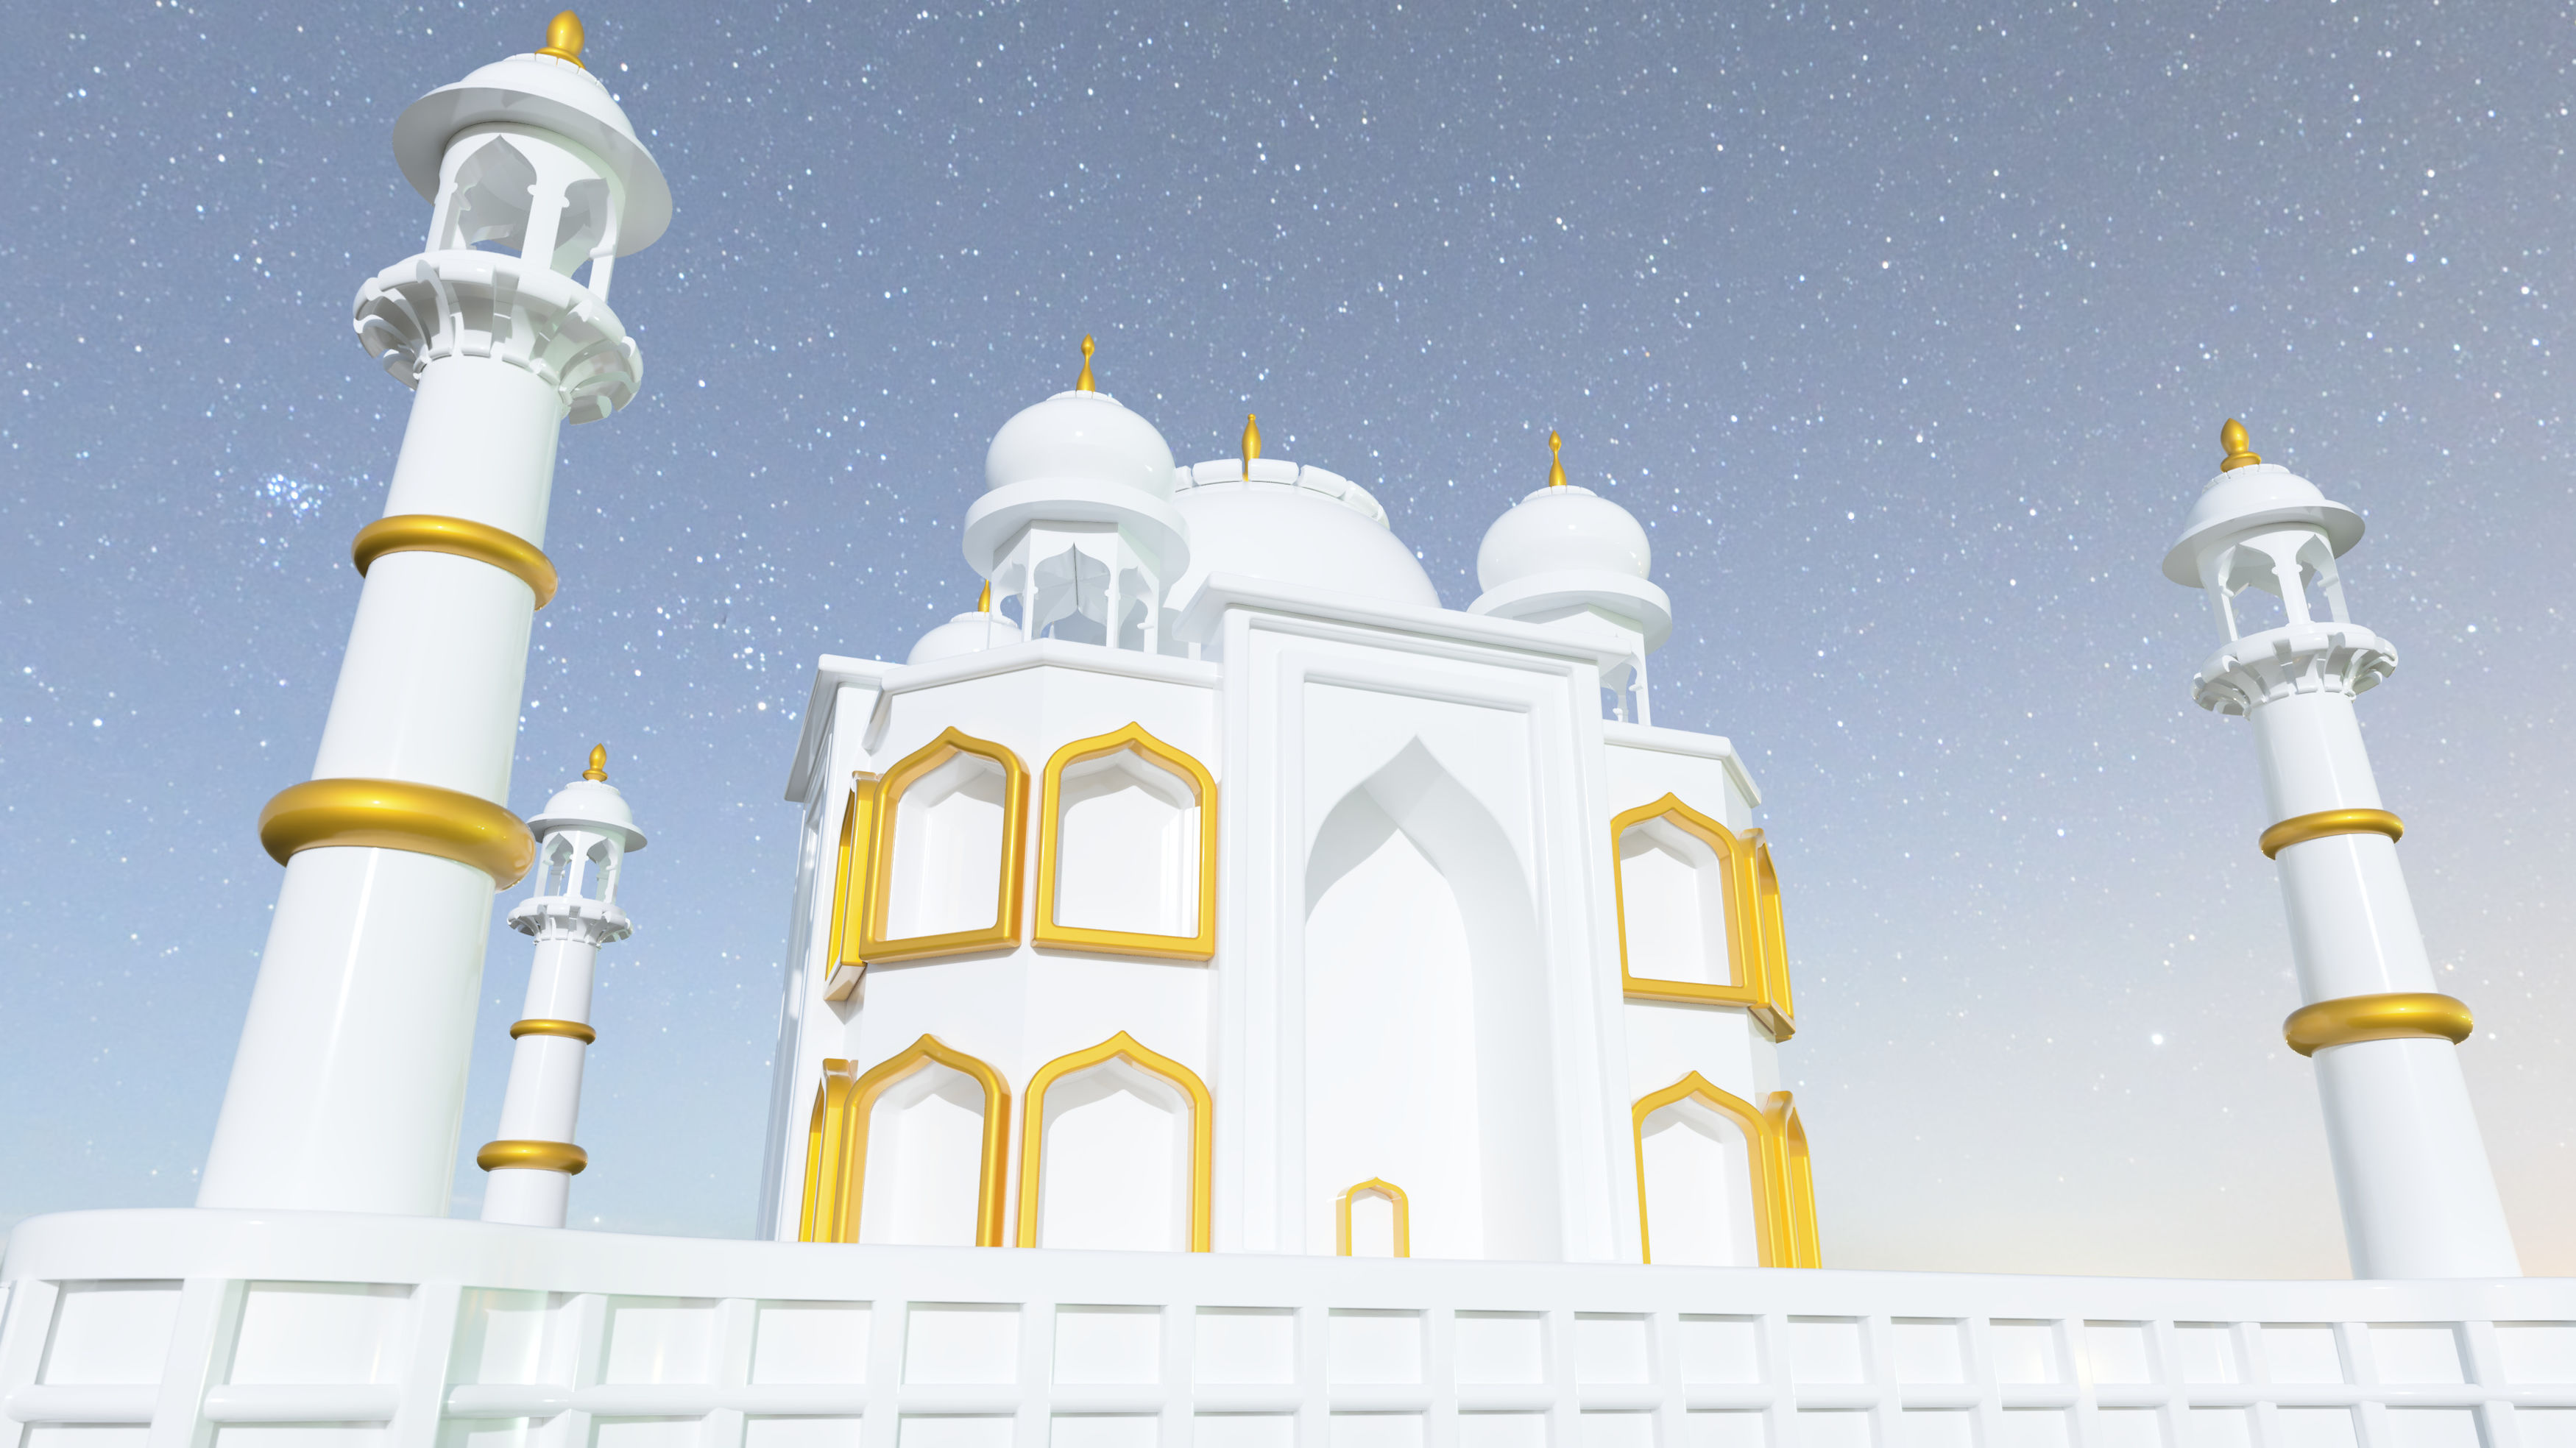 Tajmahal-fusion360-2020-may-14-10-35-03am-3500-3500